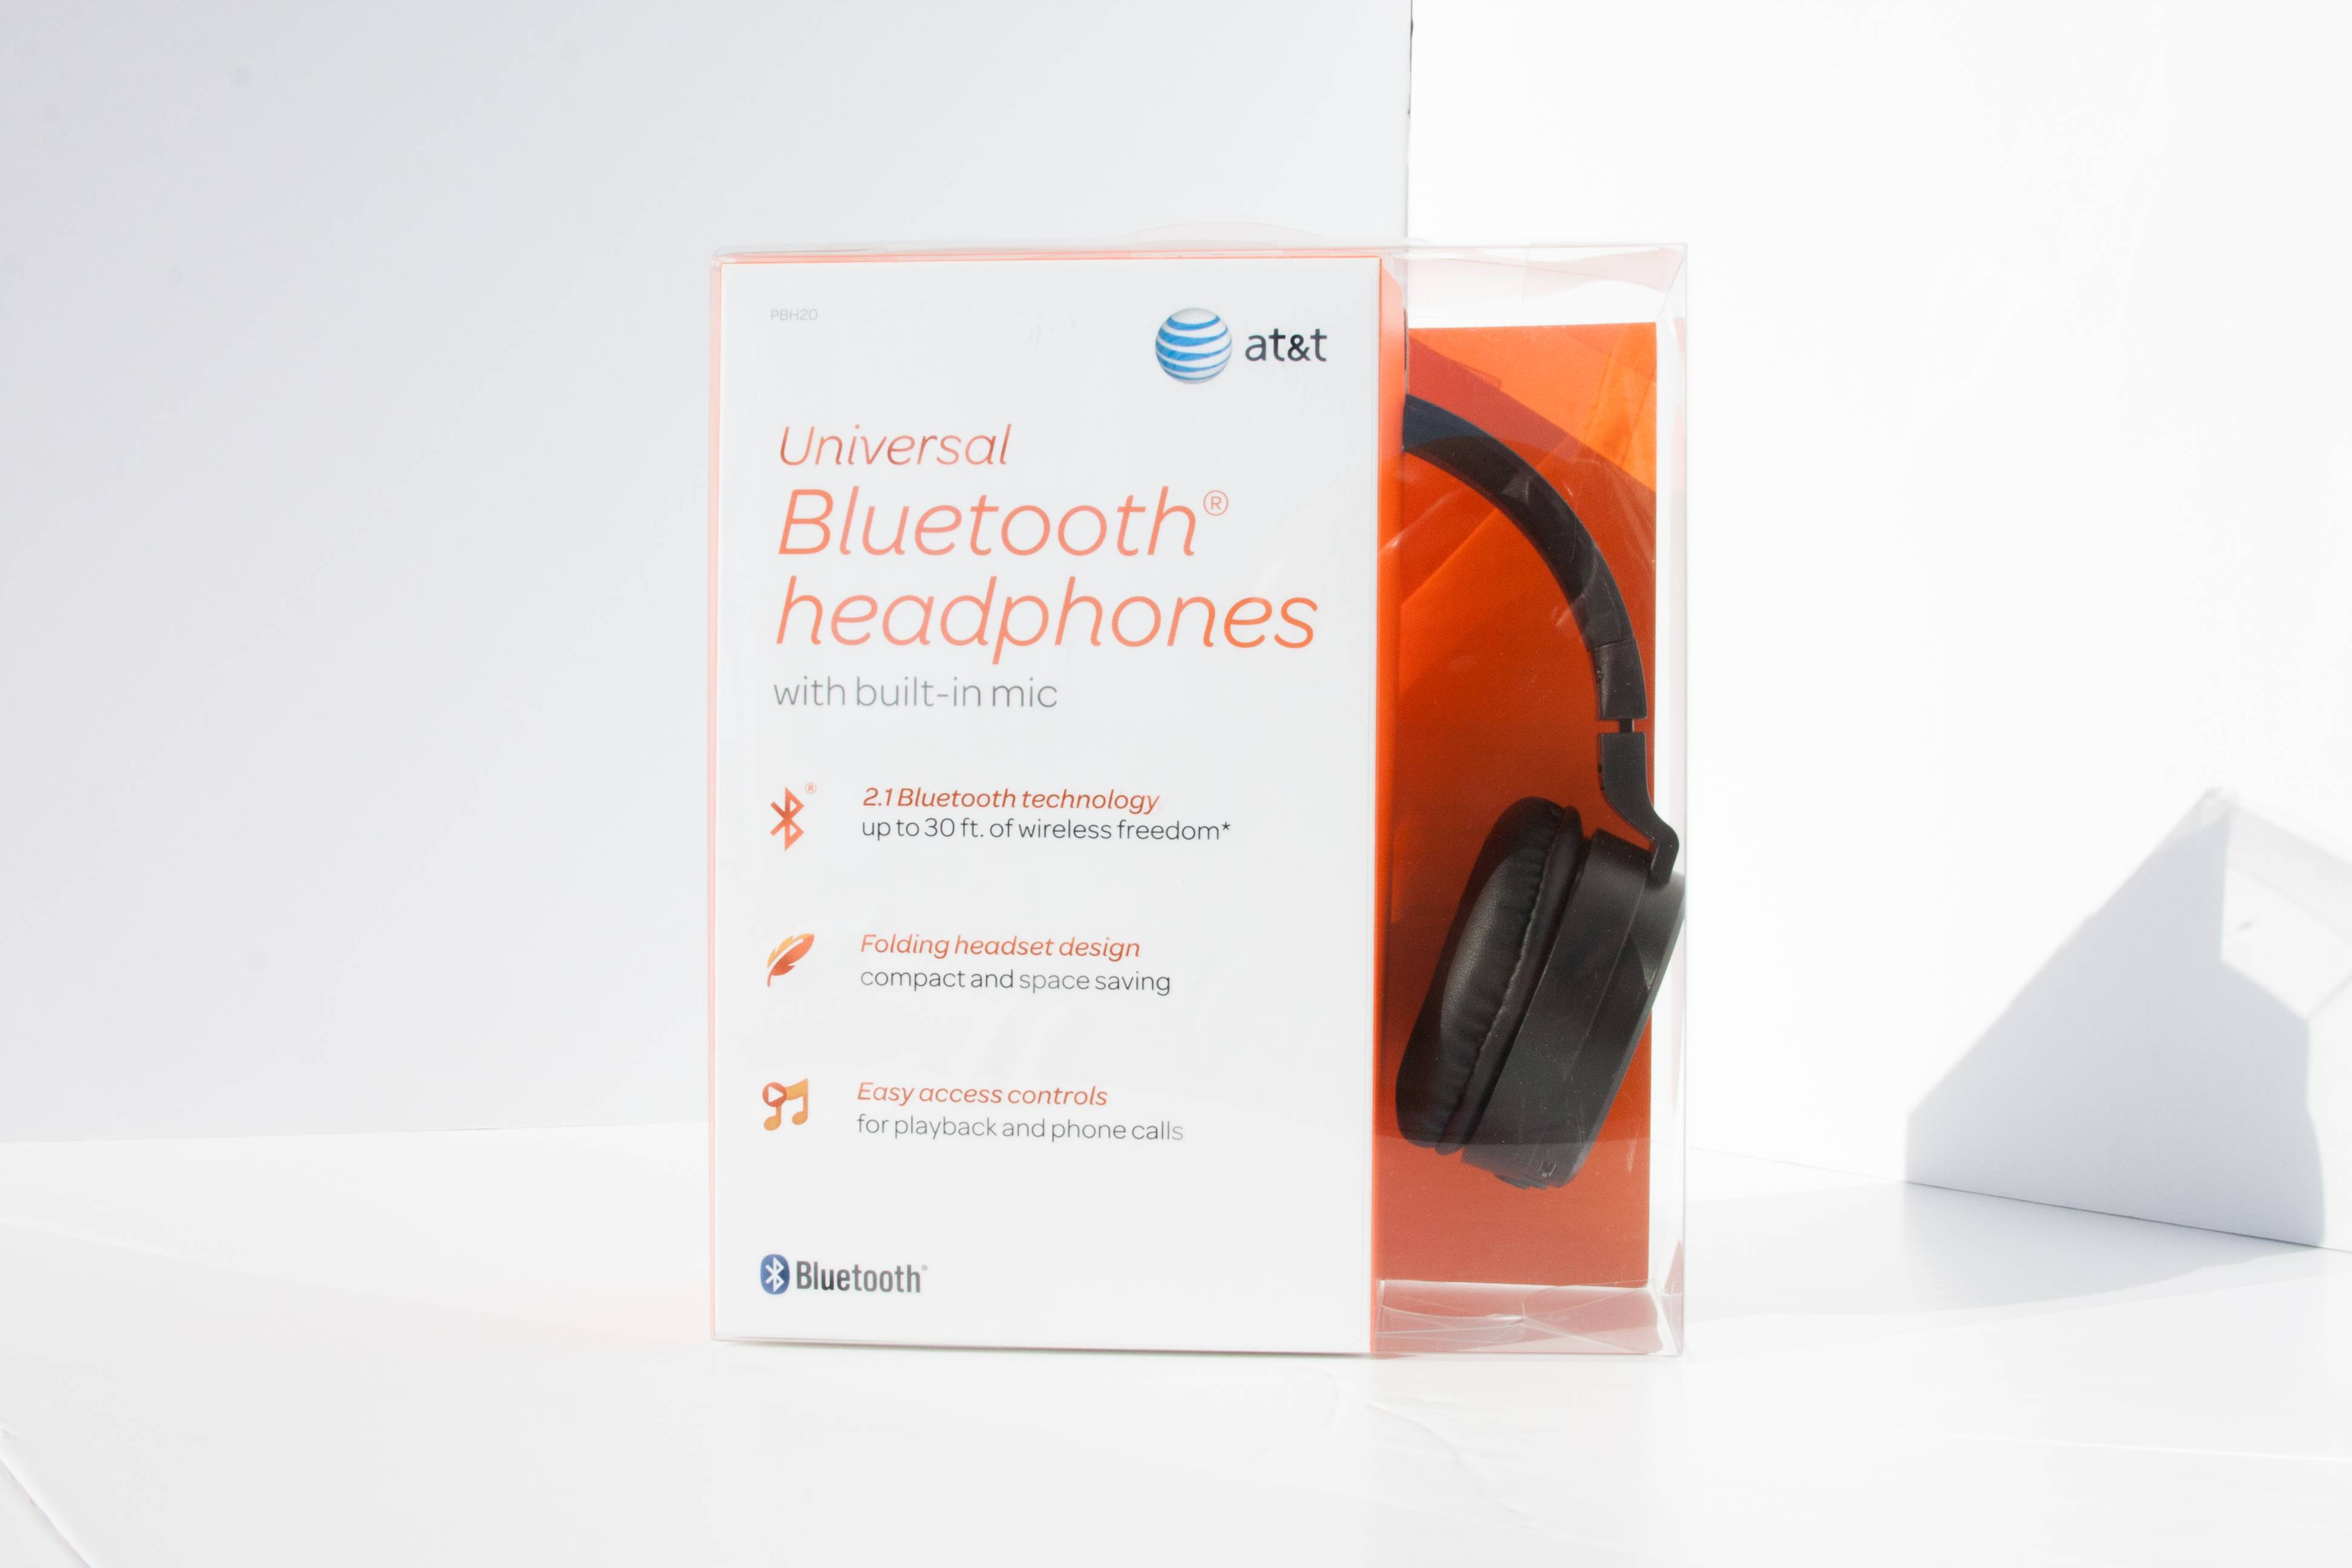 AT&T PBH20 Bluetooth Stereo Headphones image